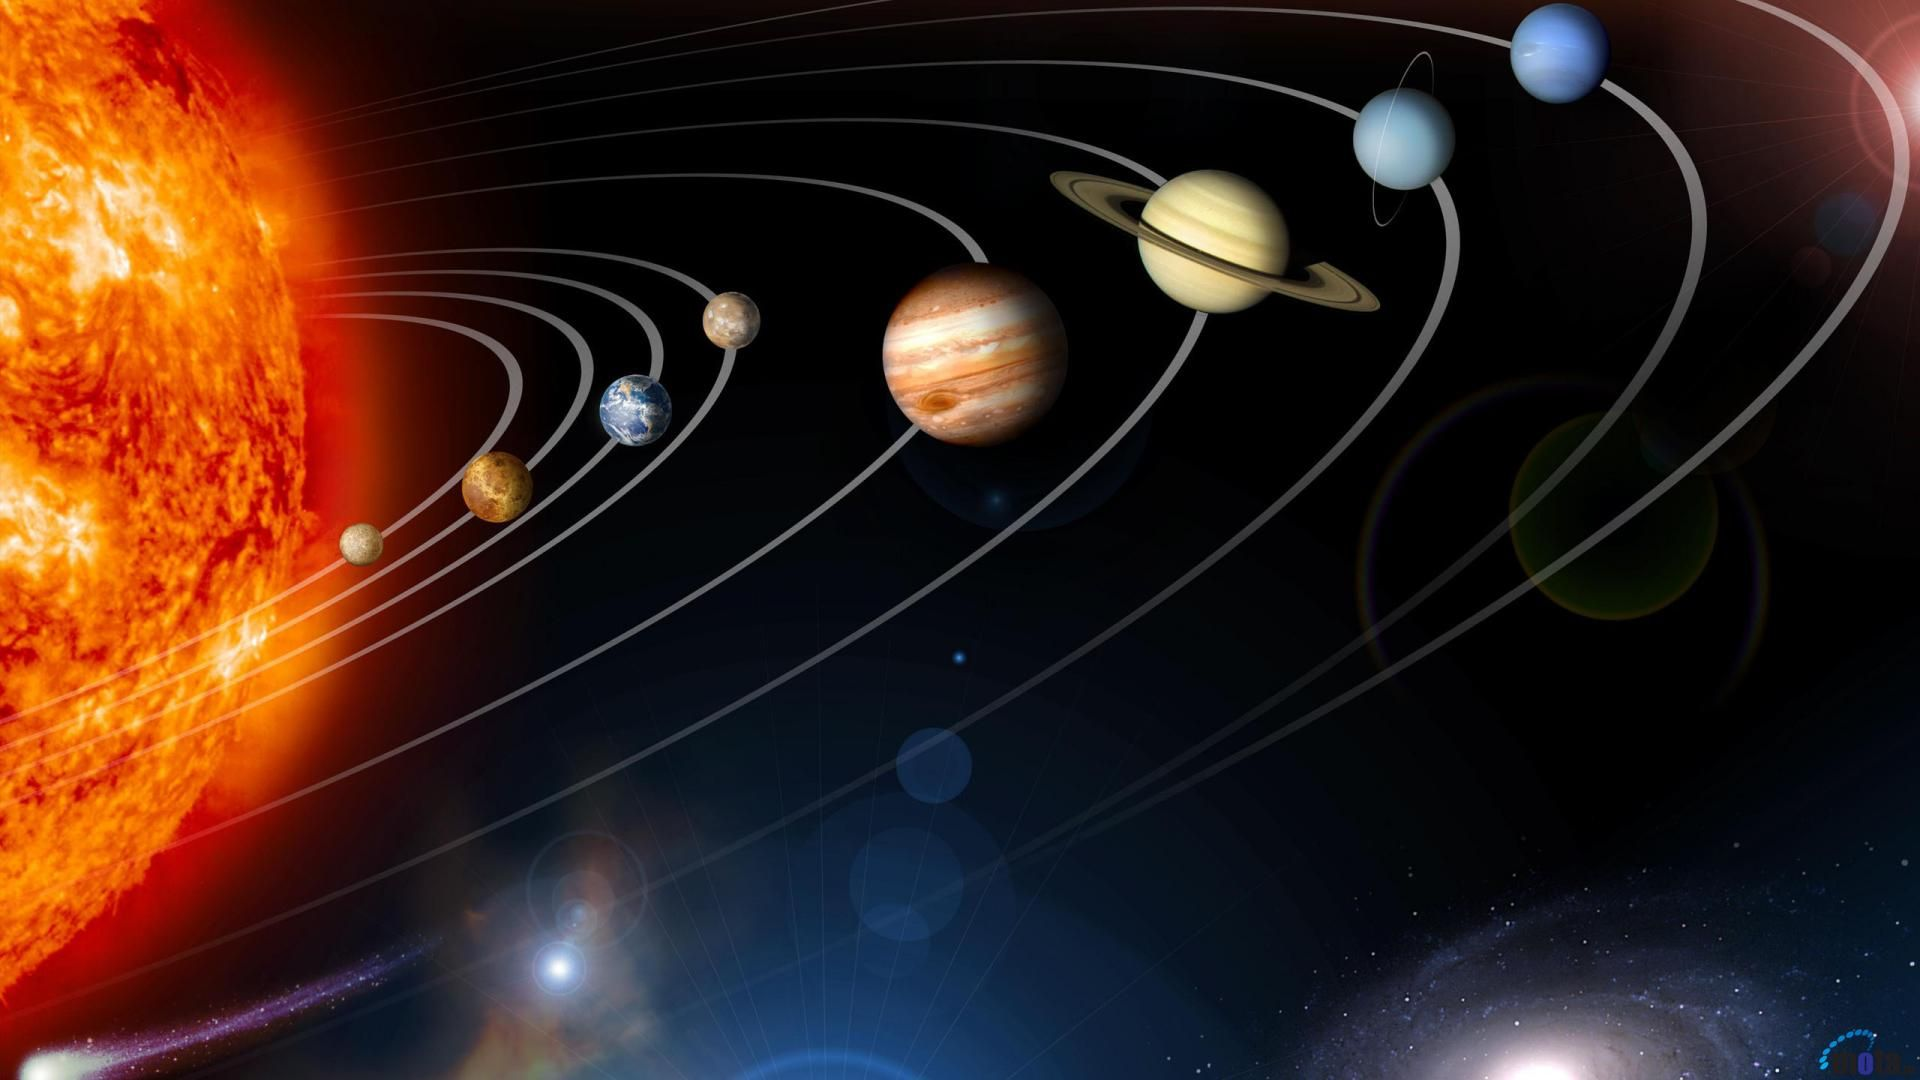 The End Of The Solar System Is About 122 Astronomical Units Au Away From The Sun Where One Au Is 93 Million Mile Solnechnaya Sistema Karlikovaya Planeta Kosmos